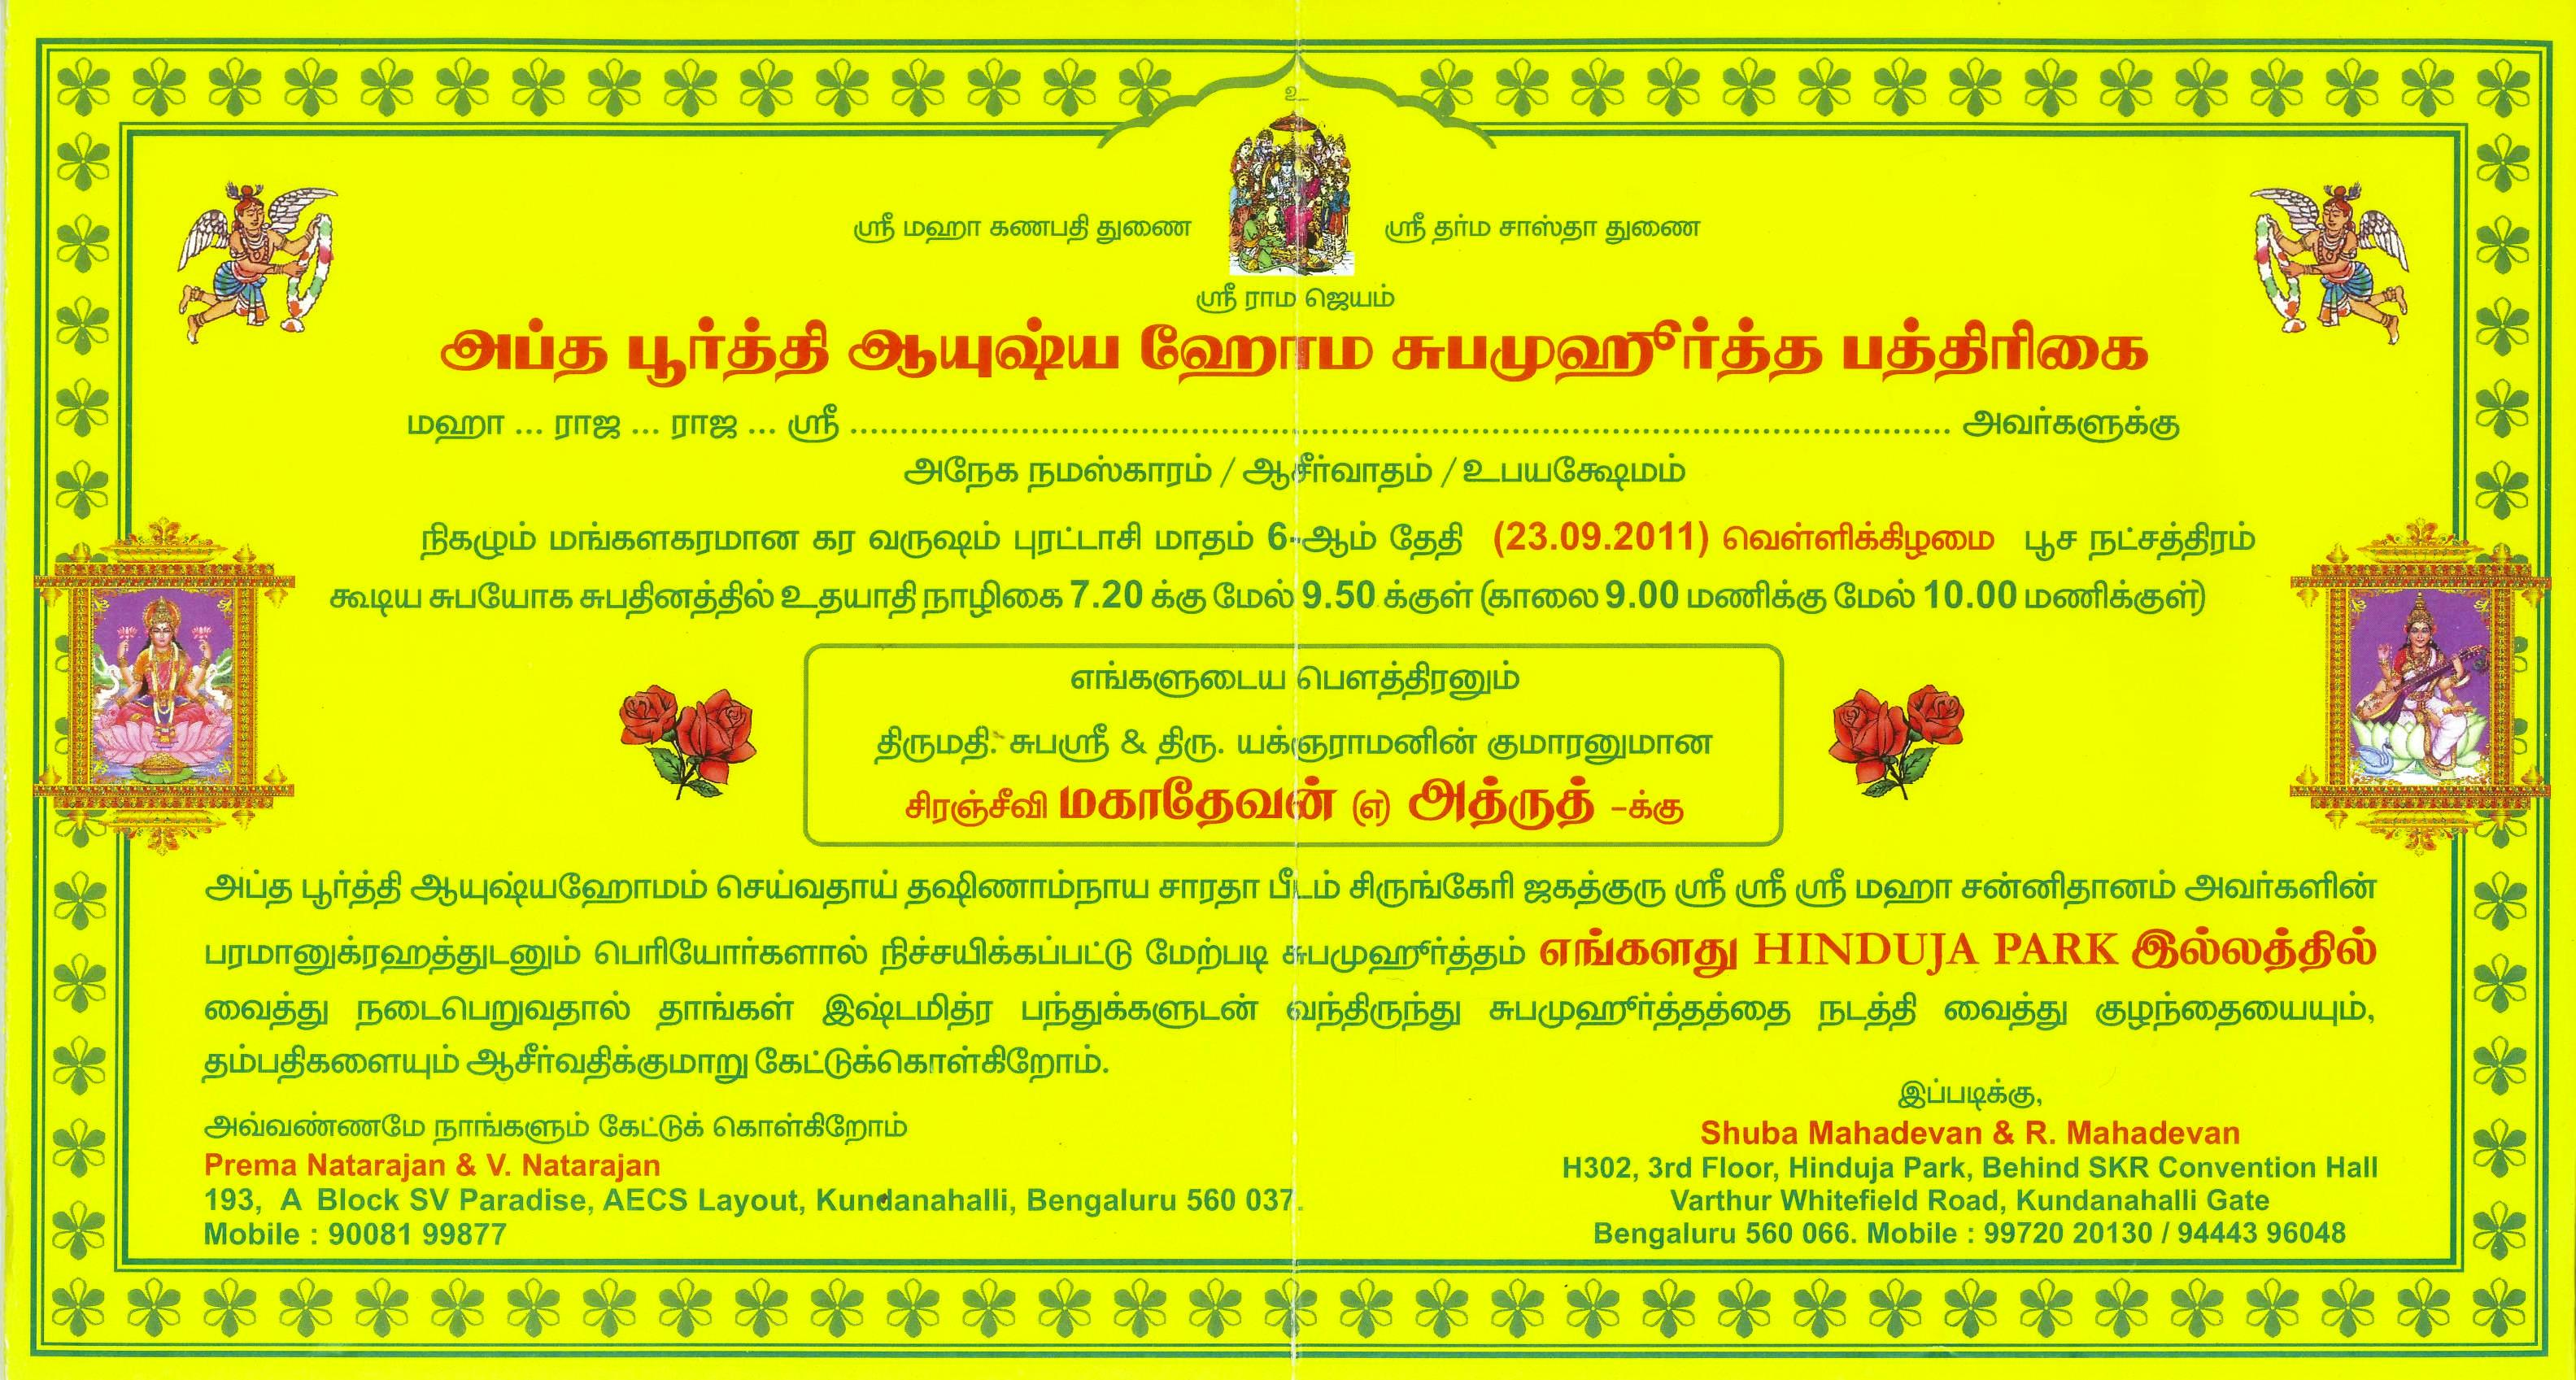 Wedding invitation wording in tamil and english yaseen for wedding invitation wording wedding invitation templates tamil stopboris Gallery